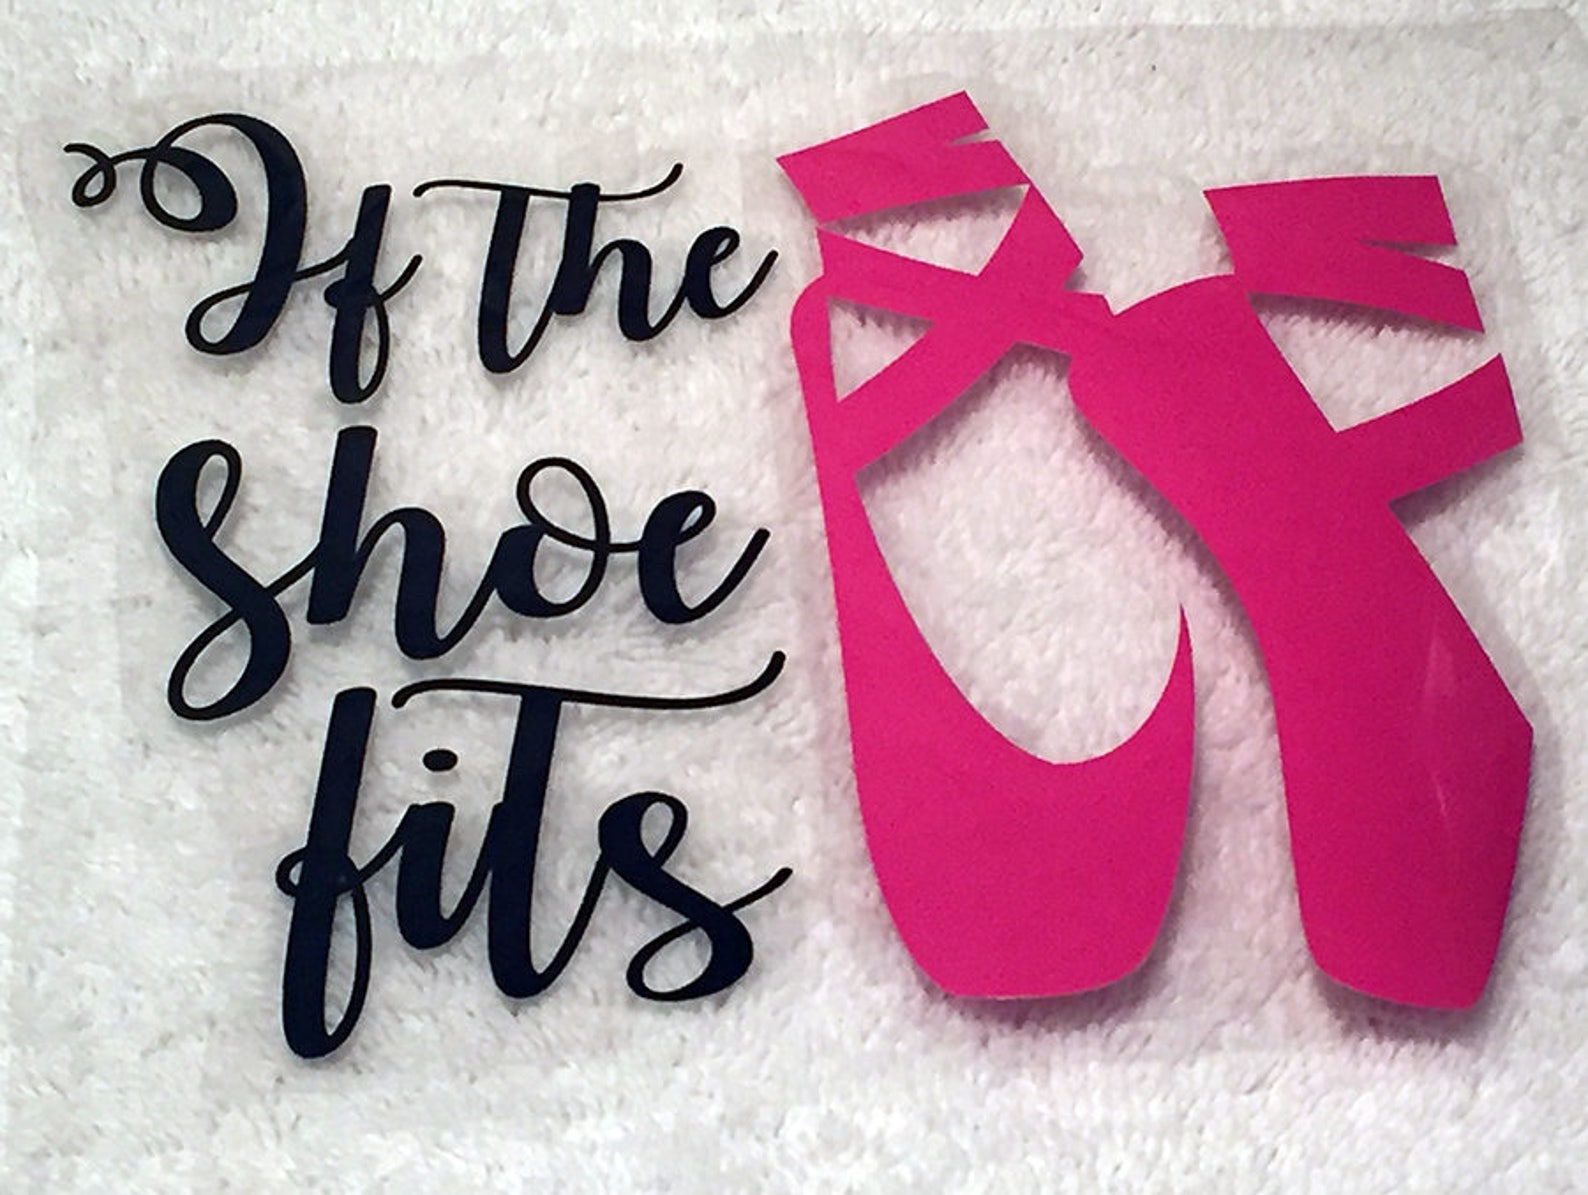 if the shoe fits - iron on heat transfer vinyl, ballet, dance iron on - free shipping!